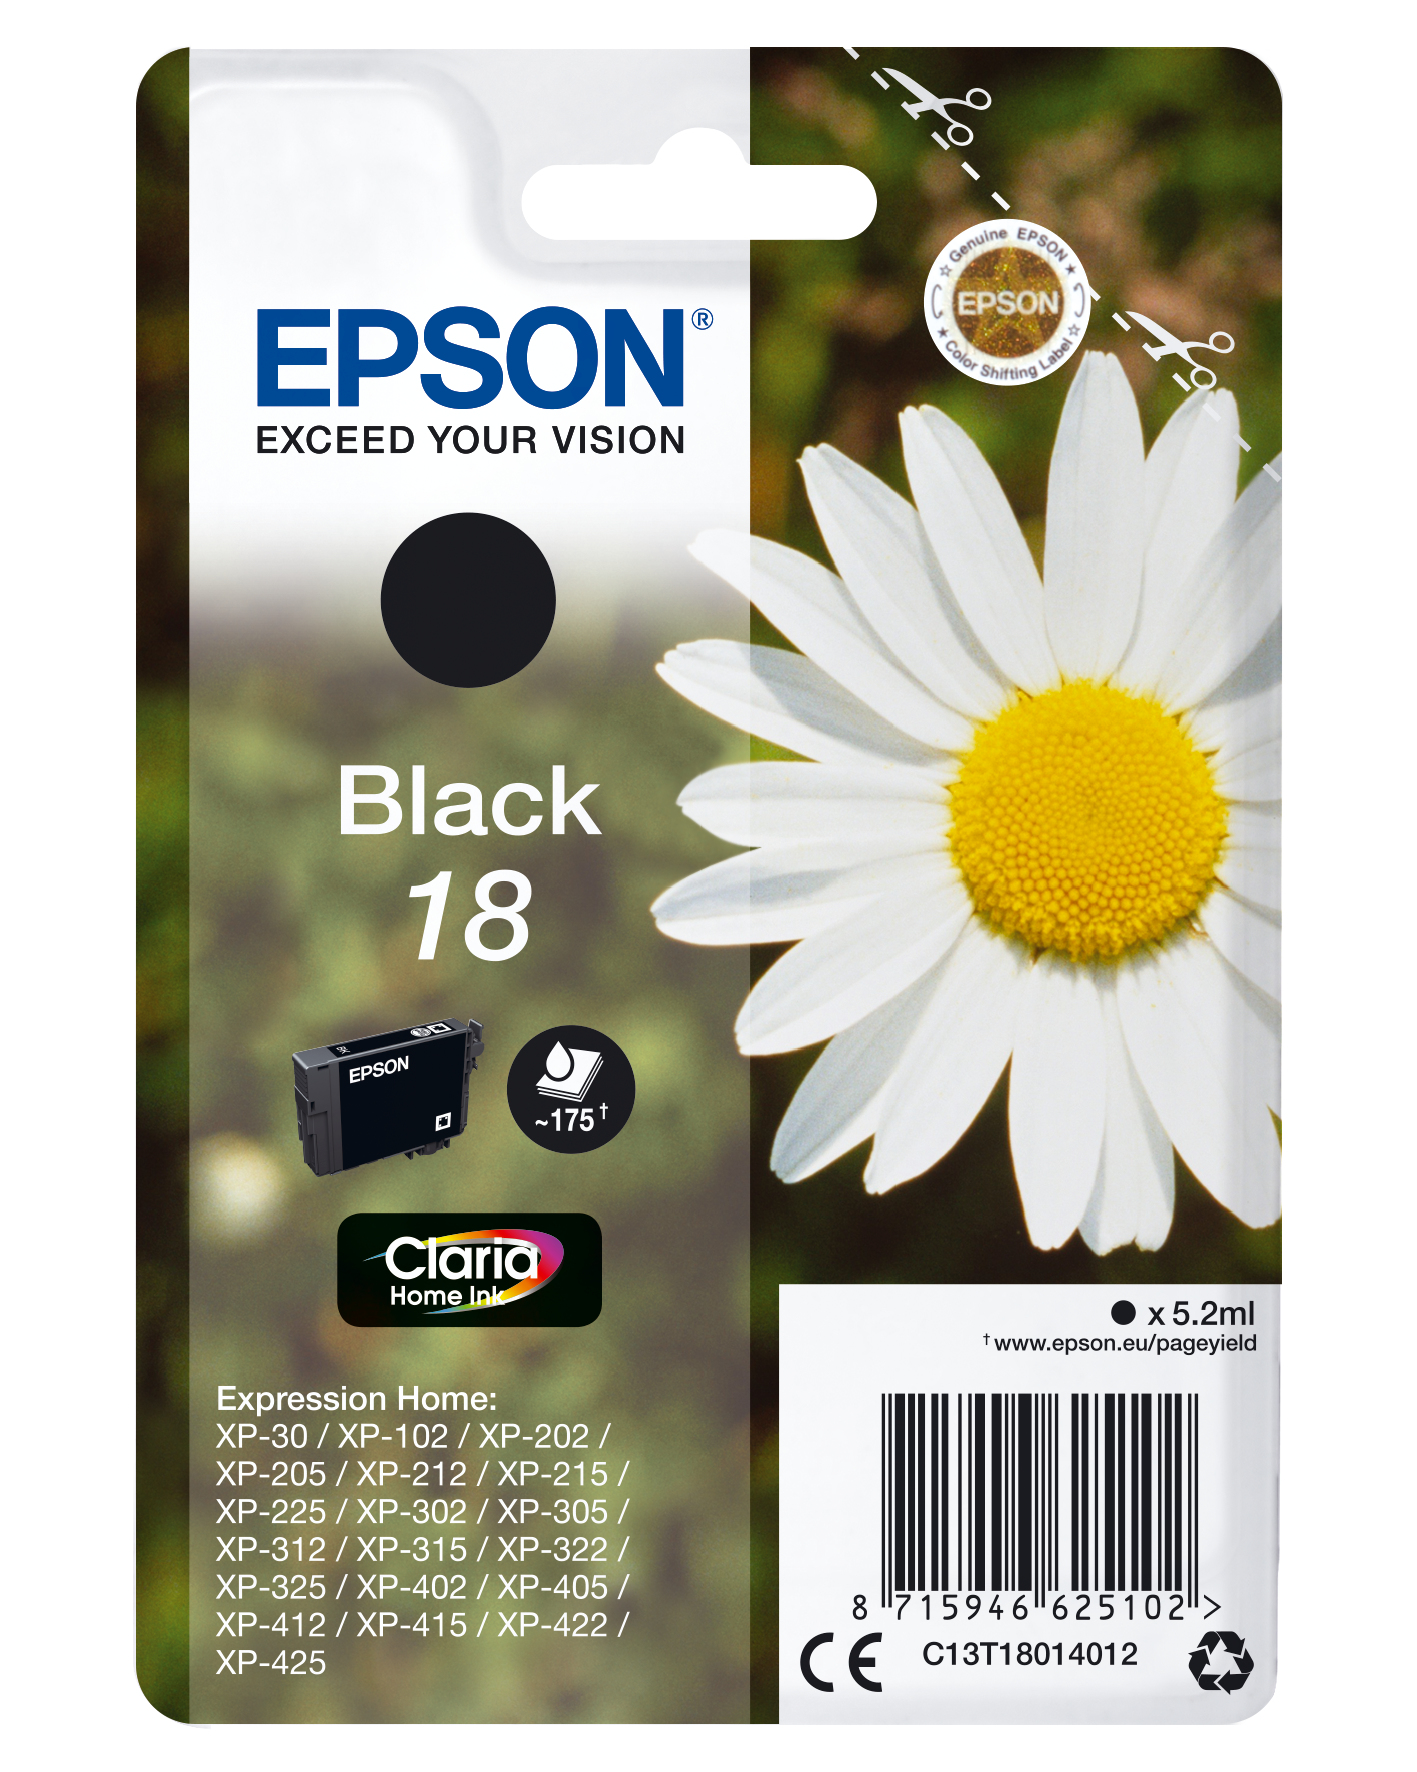 Epson 18 - 5.2 Ml - Black - Original - Ink Cartridge - For Expression Home XP-212, 215, 225, 312, 315, 322, 325, 412, 415, 422, 425 C13T18014012 - C2000